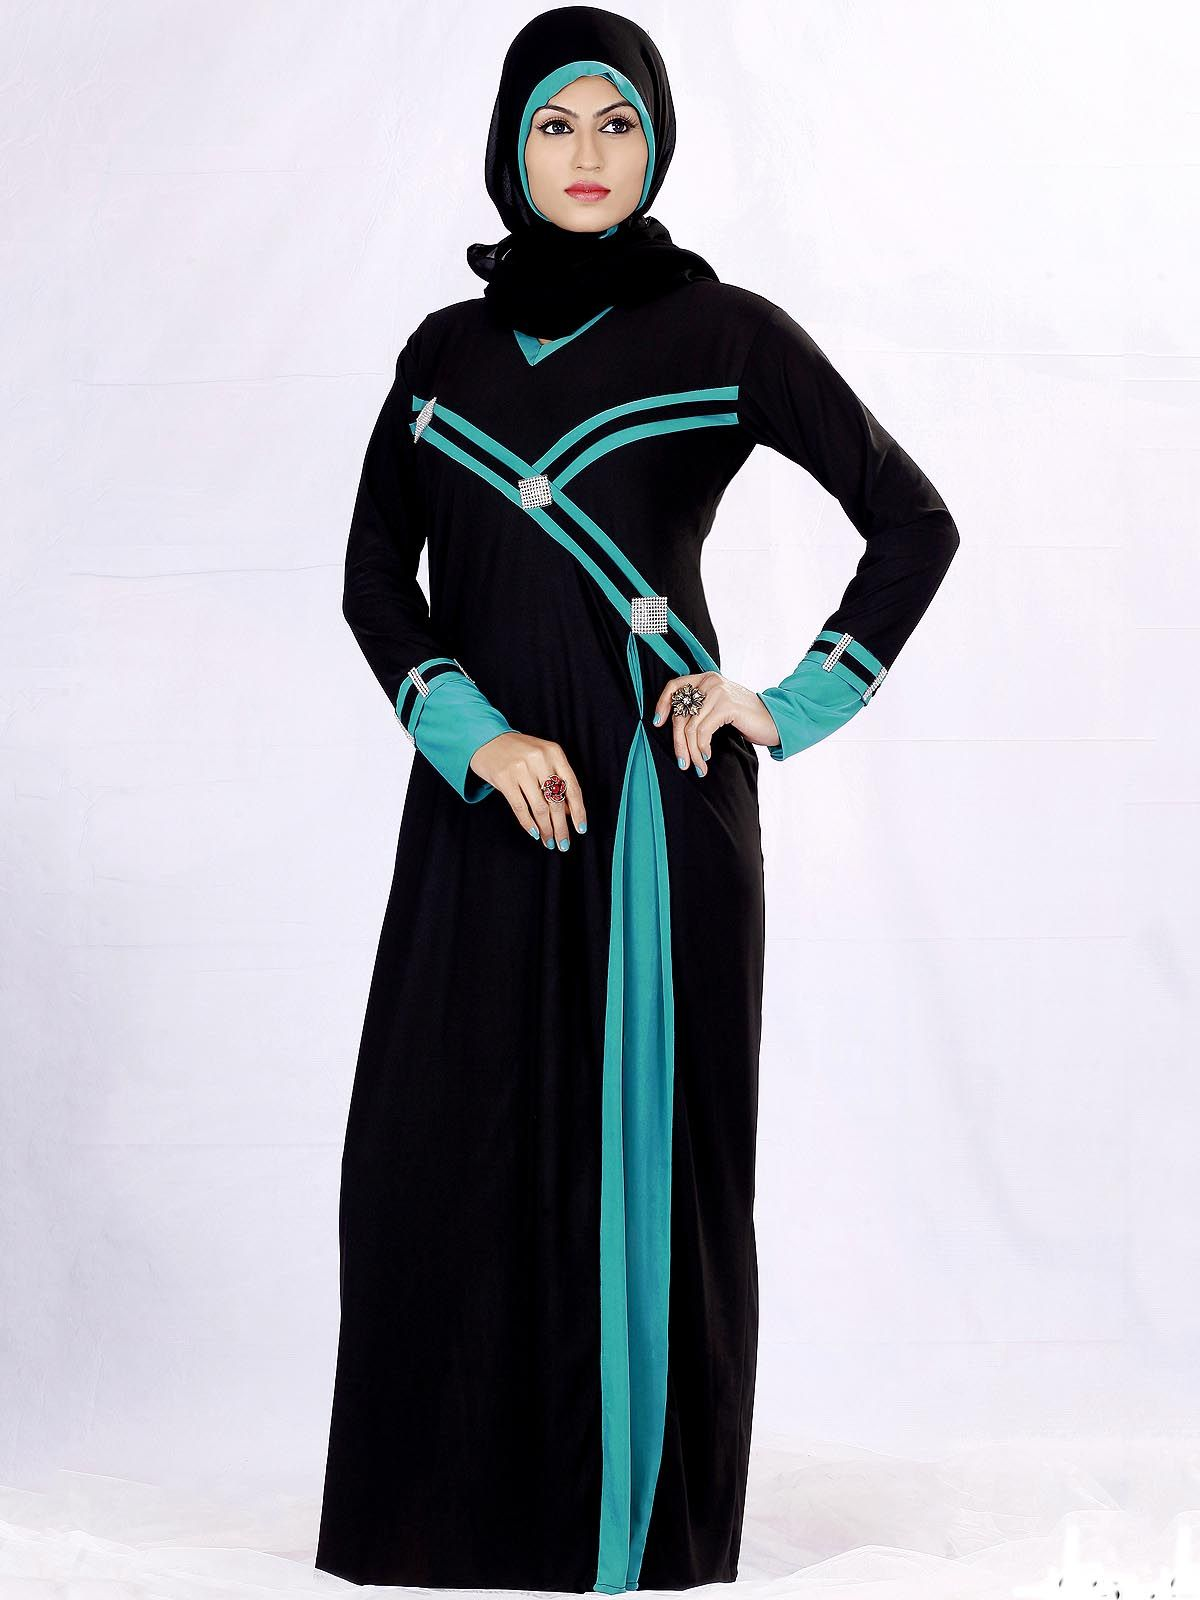 Solid Black And Turquoise Embellished Cly Luxurious Abaya Burka With Hijab Hijabfashion Hijabstyle